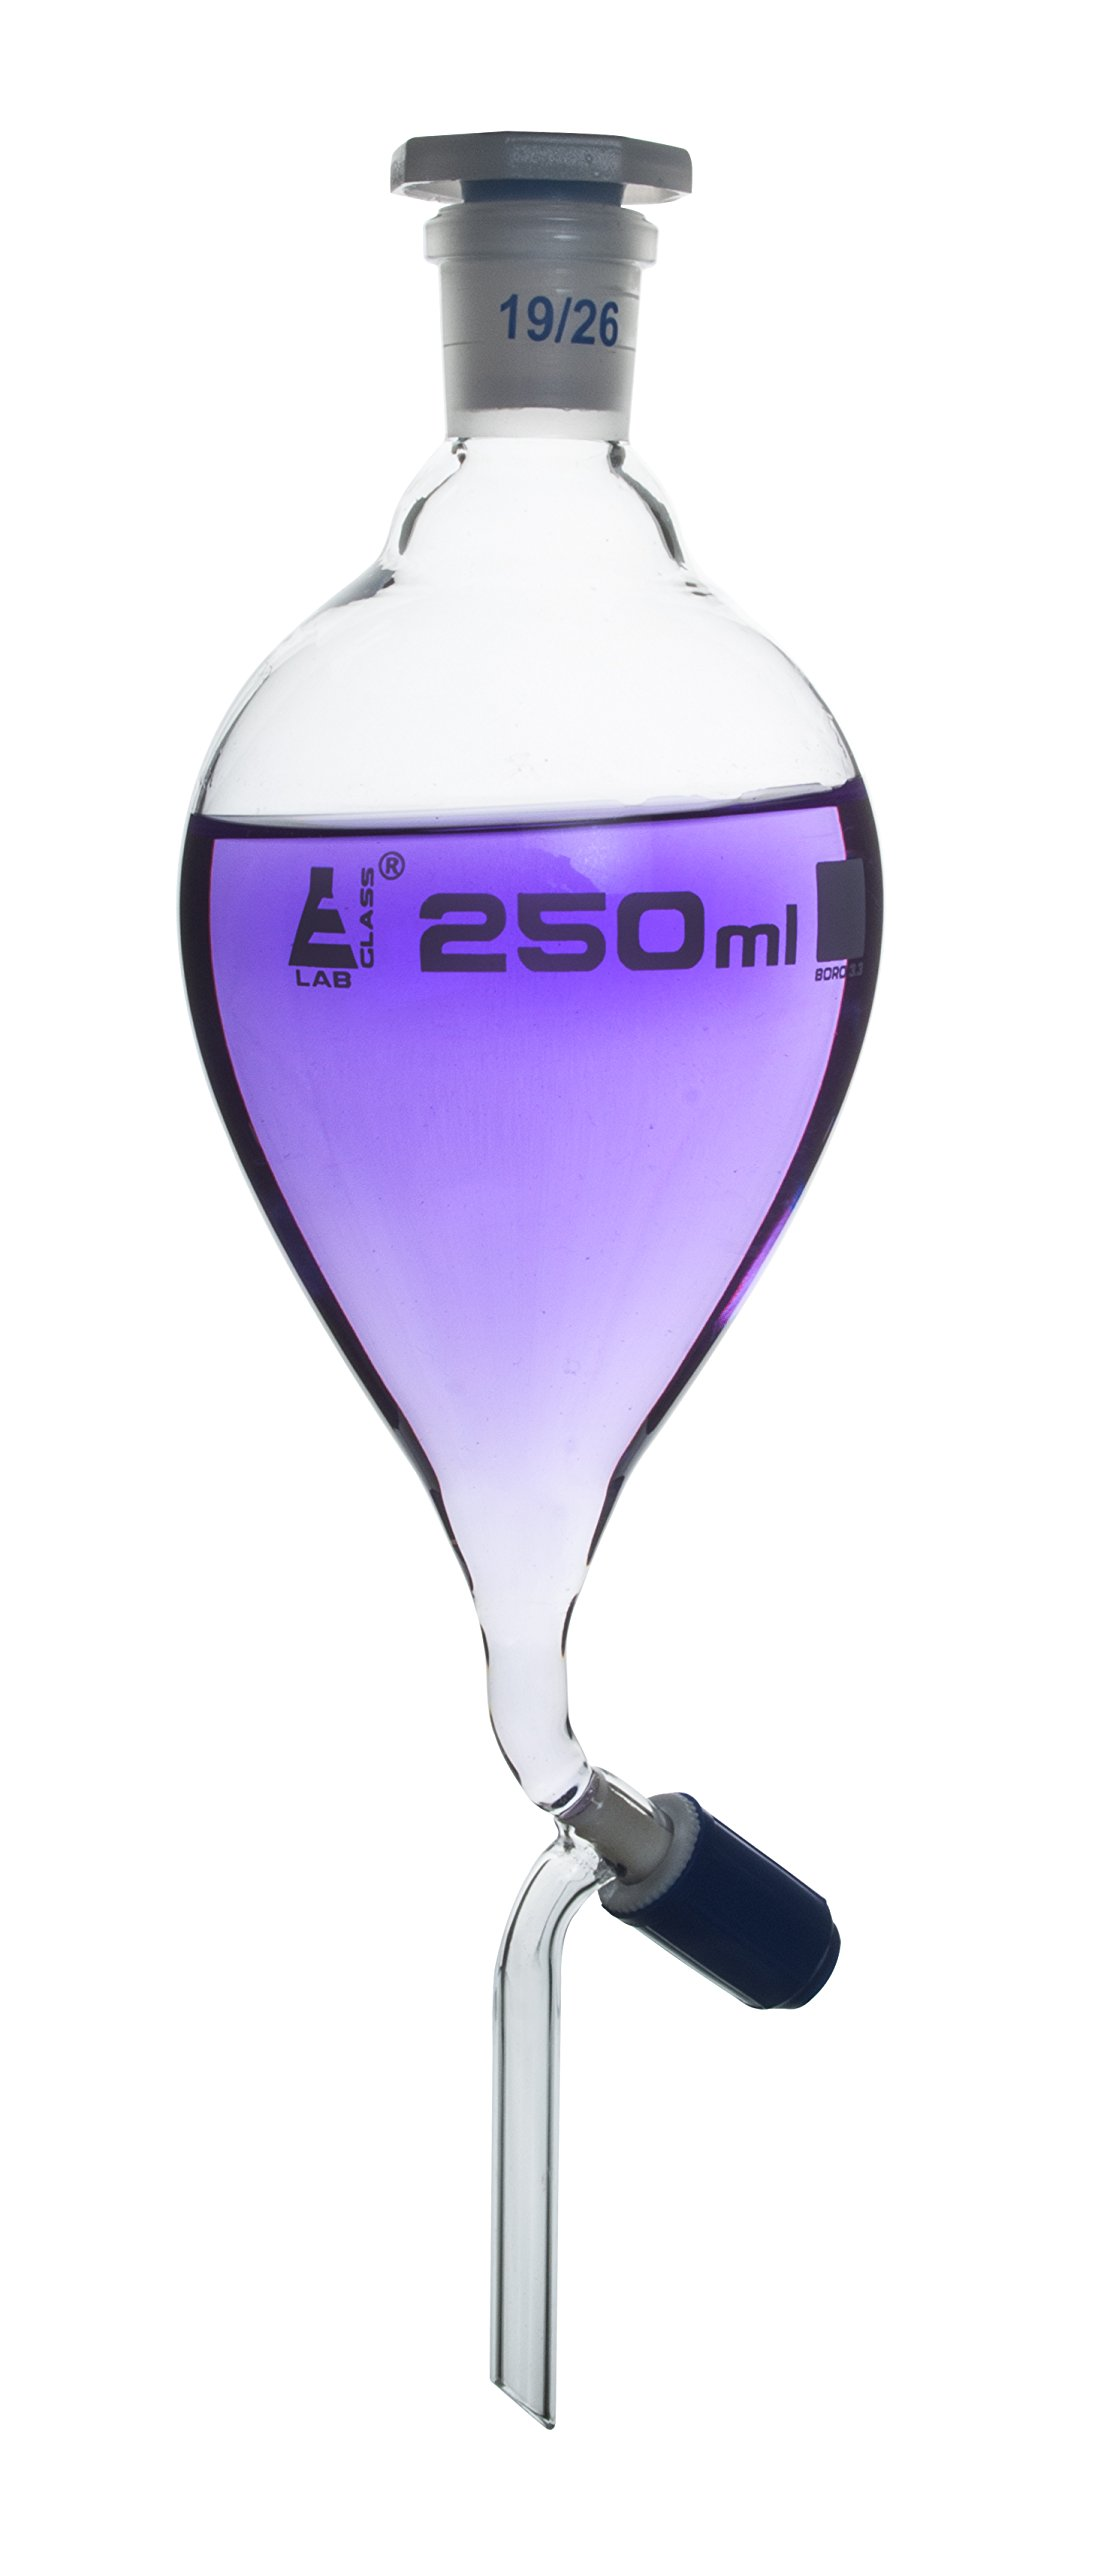 Separating Funnel, 250ml - Pressure Equalizing, Pear Shaped - 19/26 Plastic Stopper, Rotaflow Stopcock - Borosilicate Glass - Eisco Labs by EISCO